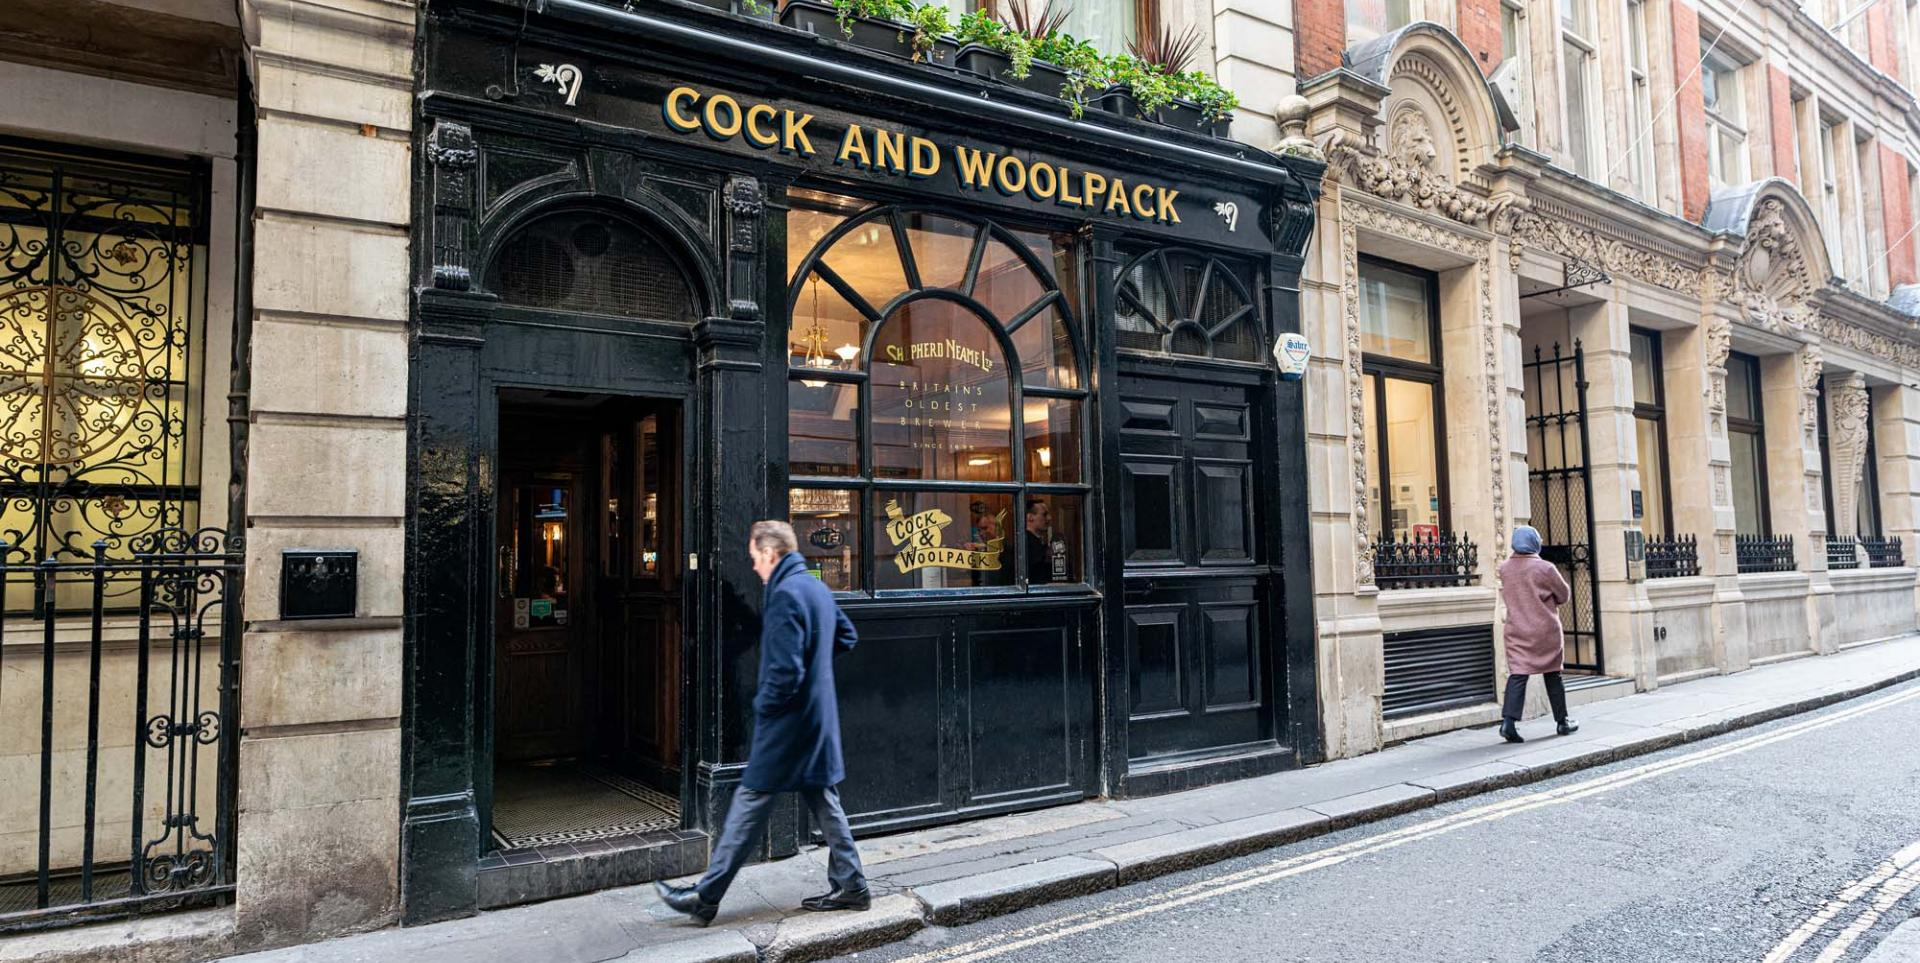 Cock and woolpack exterior